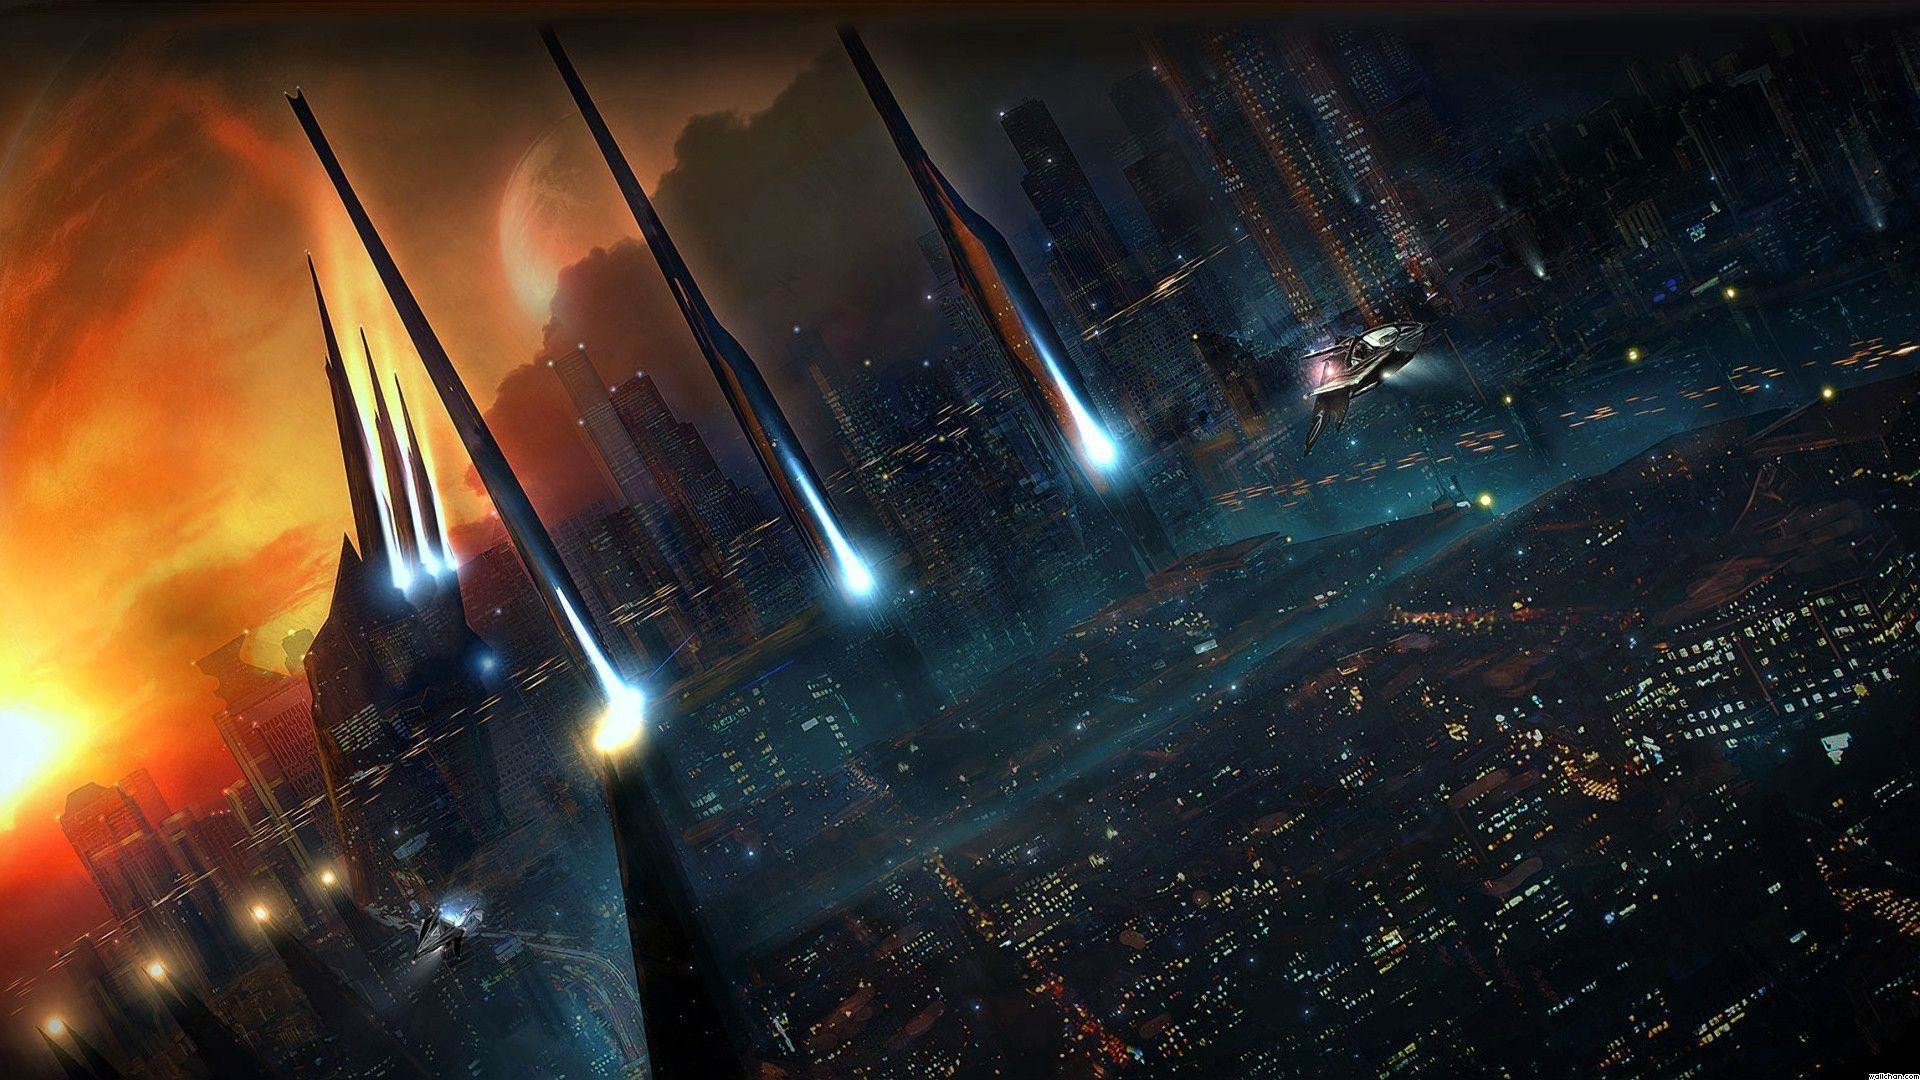 Epic Space Wallpapers (76+ background pictures)